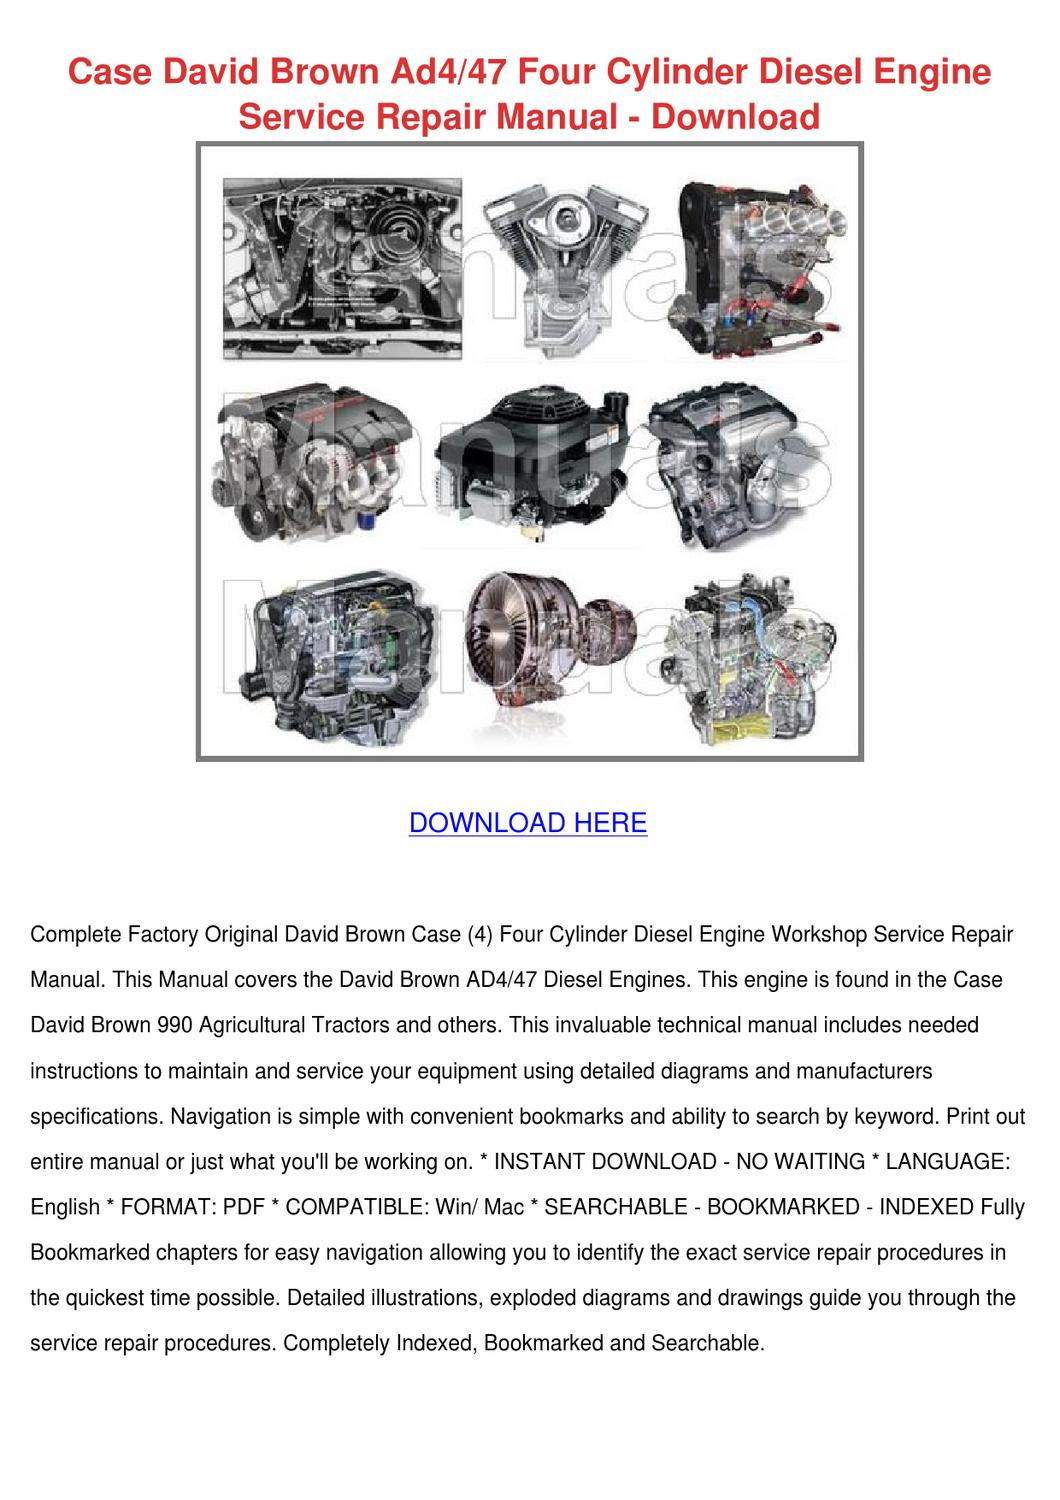 Case David Brown Ad447 Four Cylinder Diesel E By Terisander